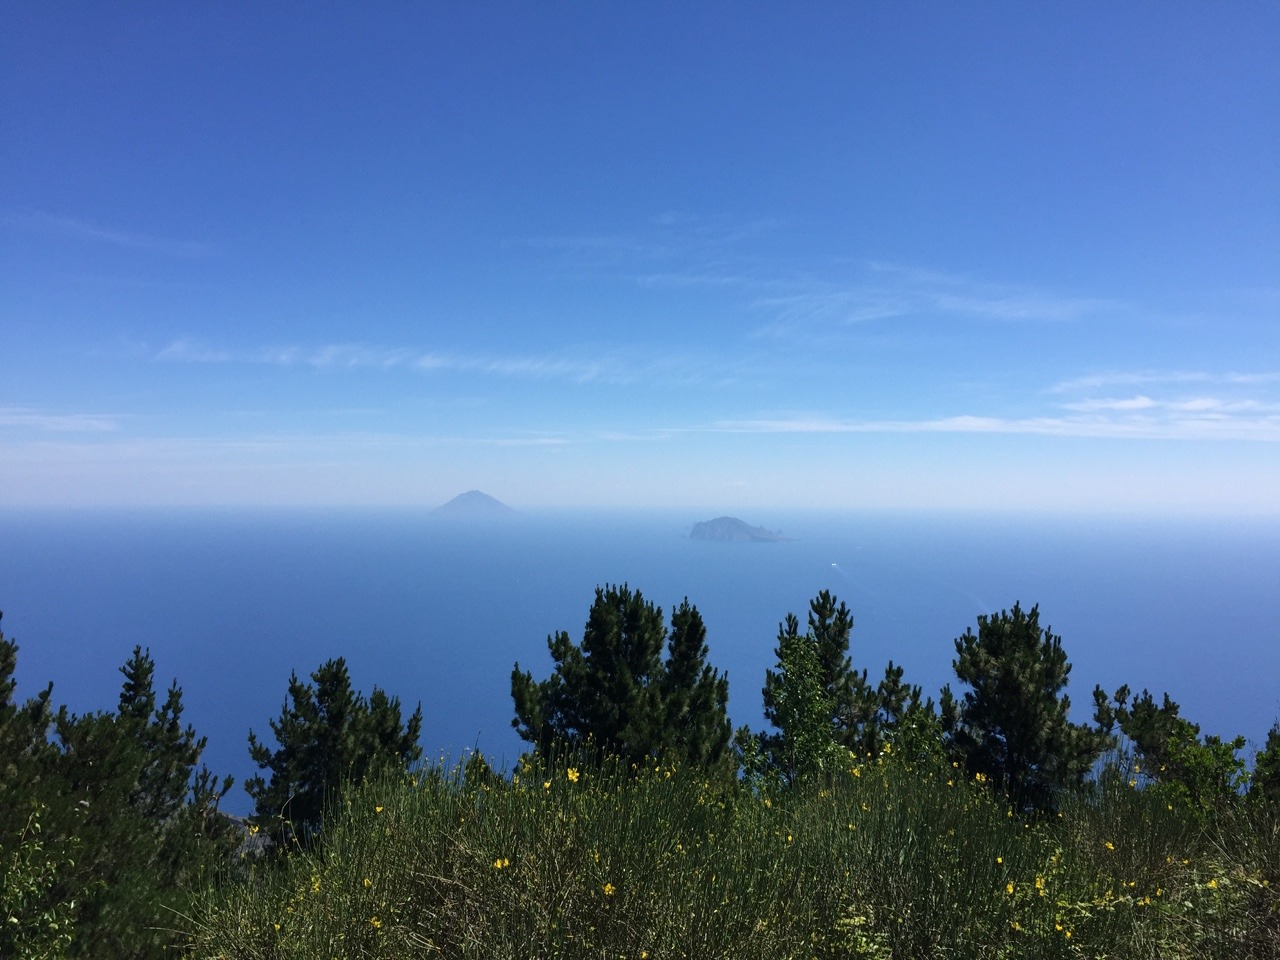 The view from the top of Fossa delle Felci, 962m. The island on the left is Stromboli, an active volcano.